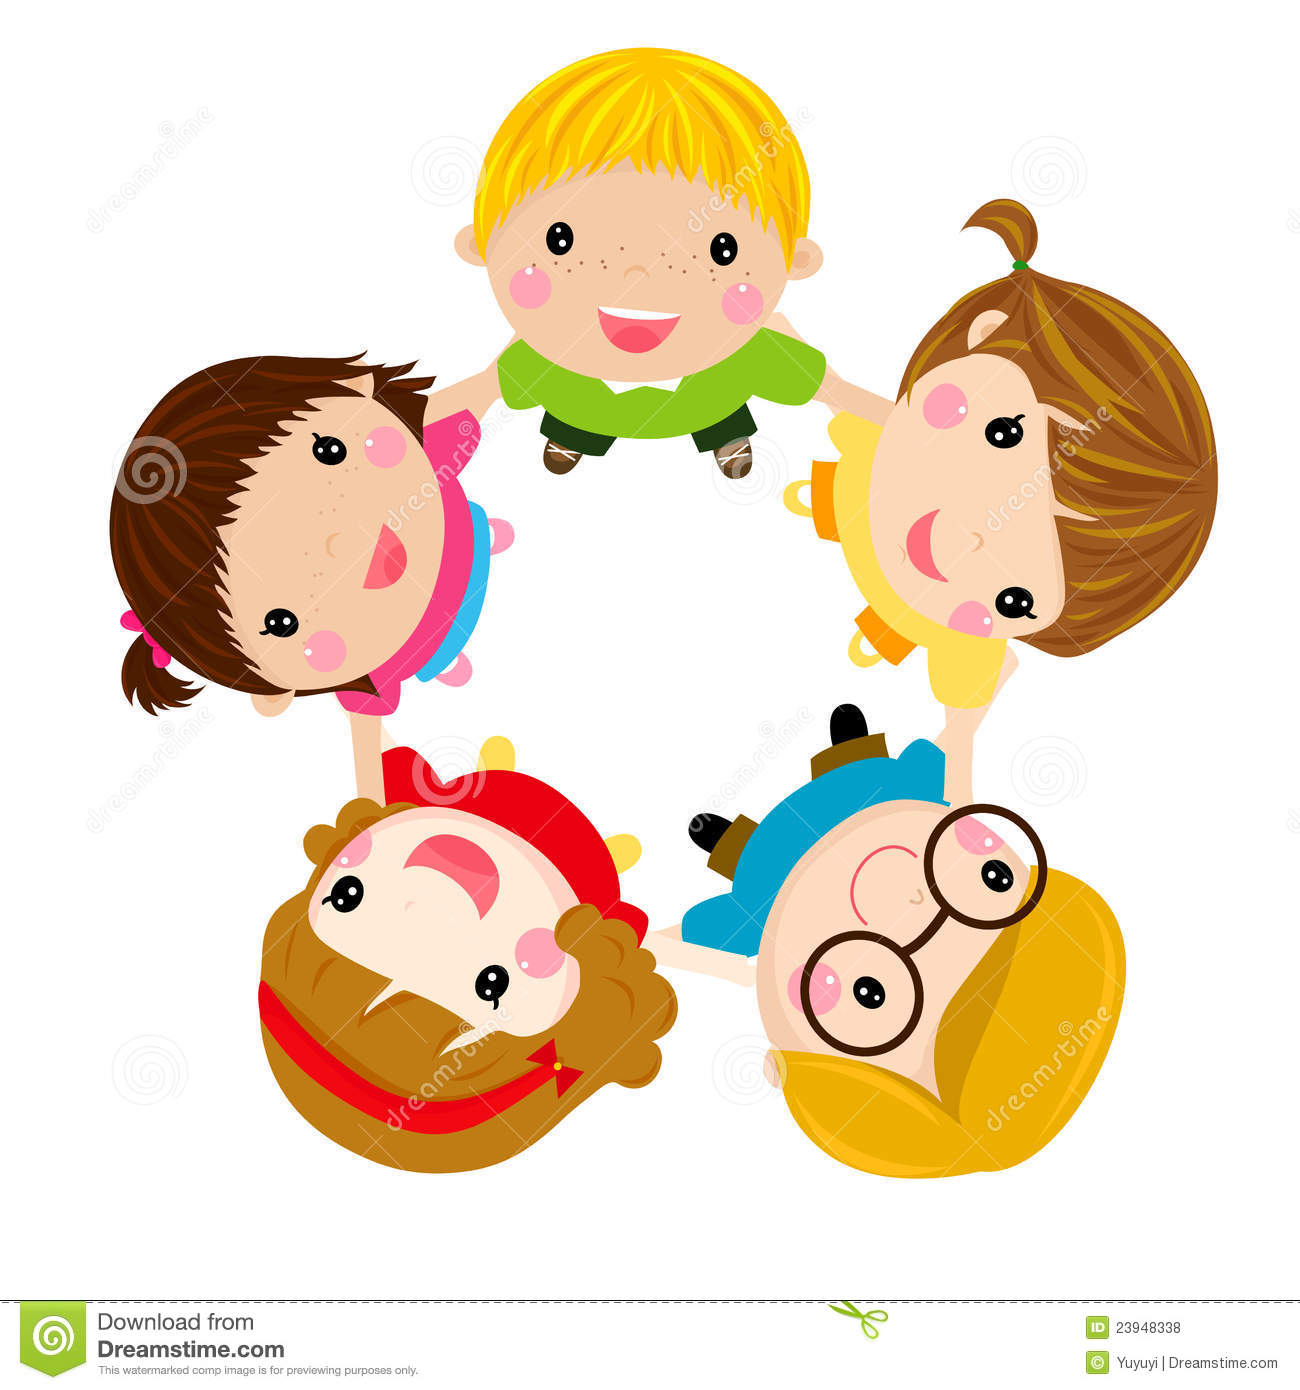 Image result for friends animation